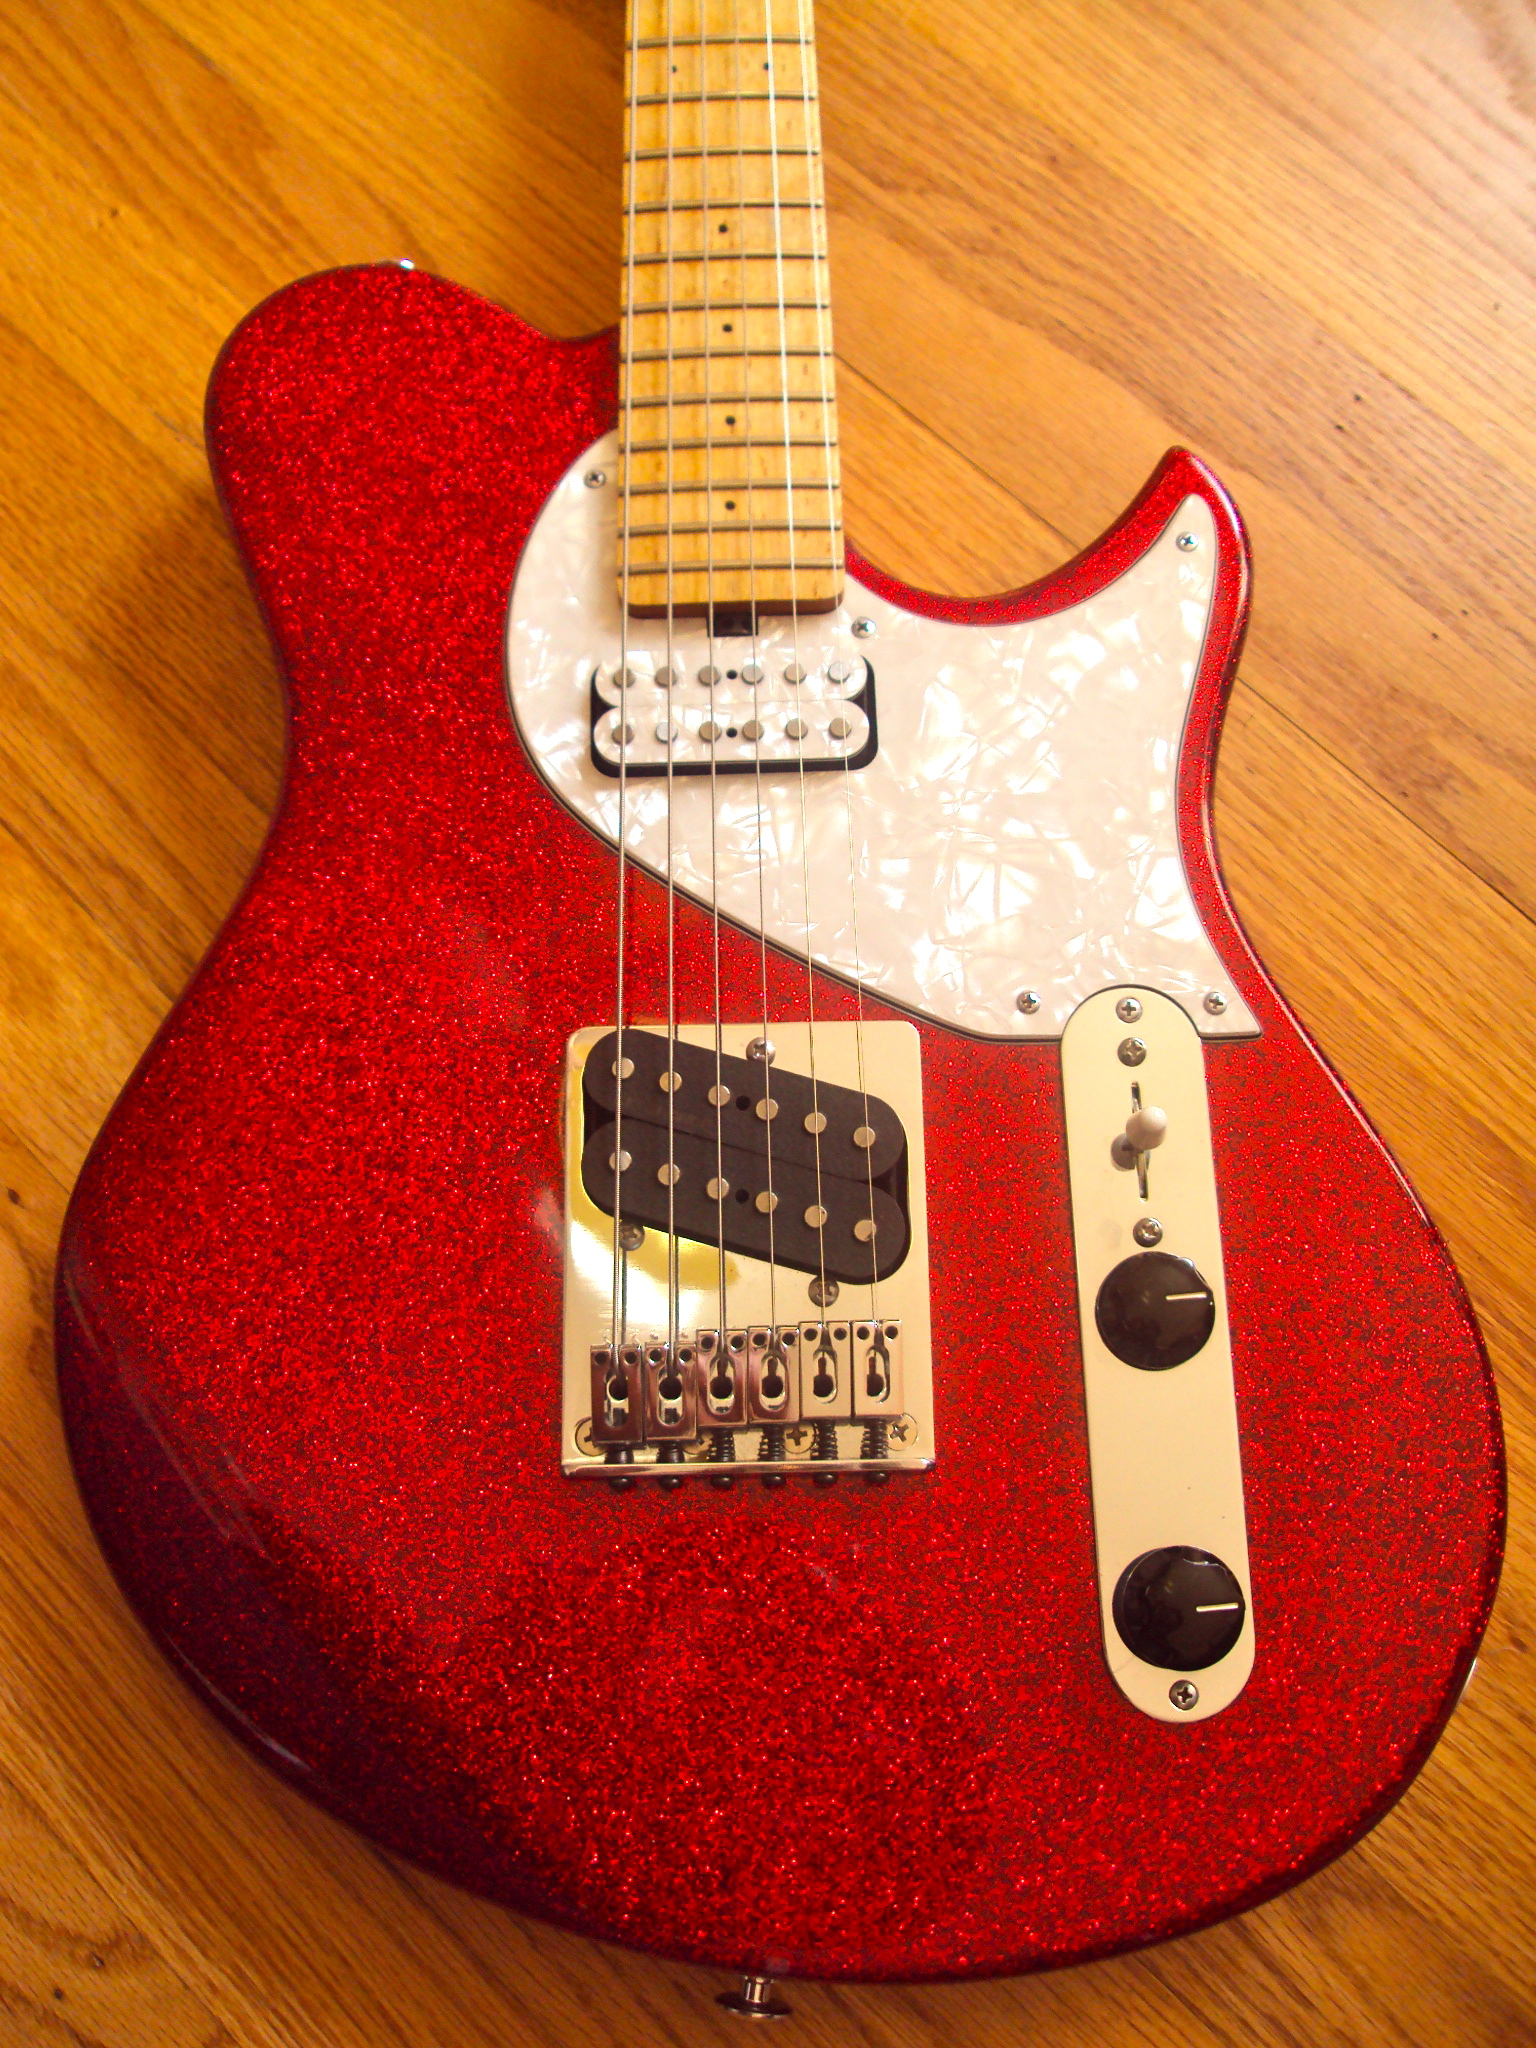 This red sparkle Speedster features Rio Grande Humbuckers with coil-taps